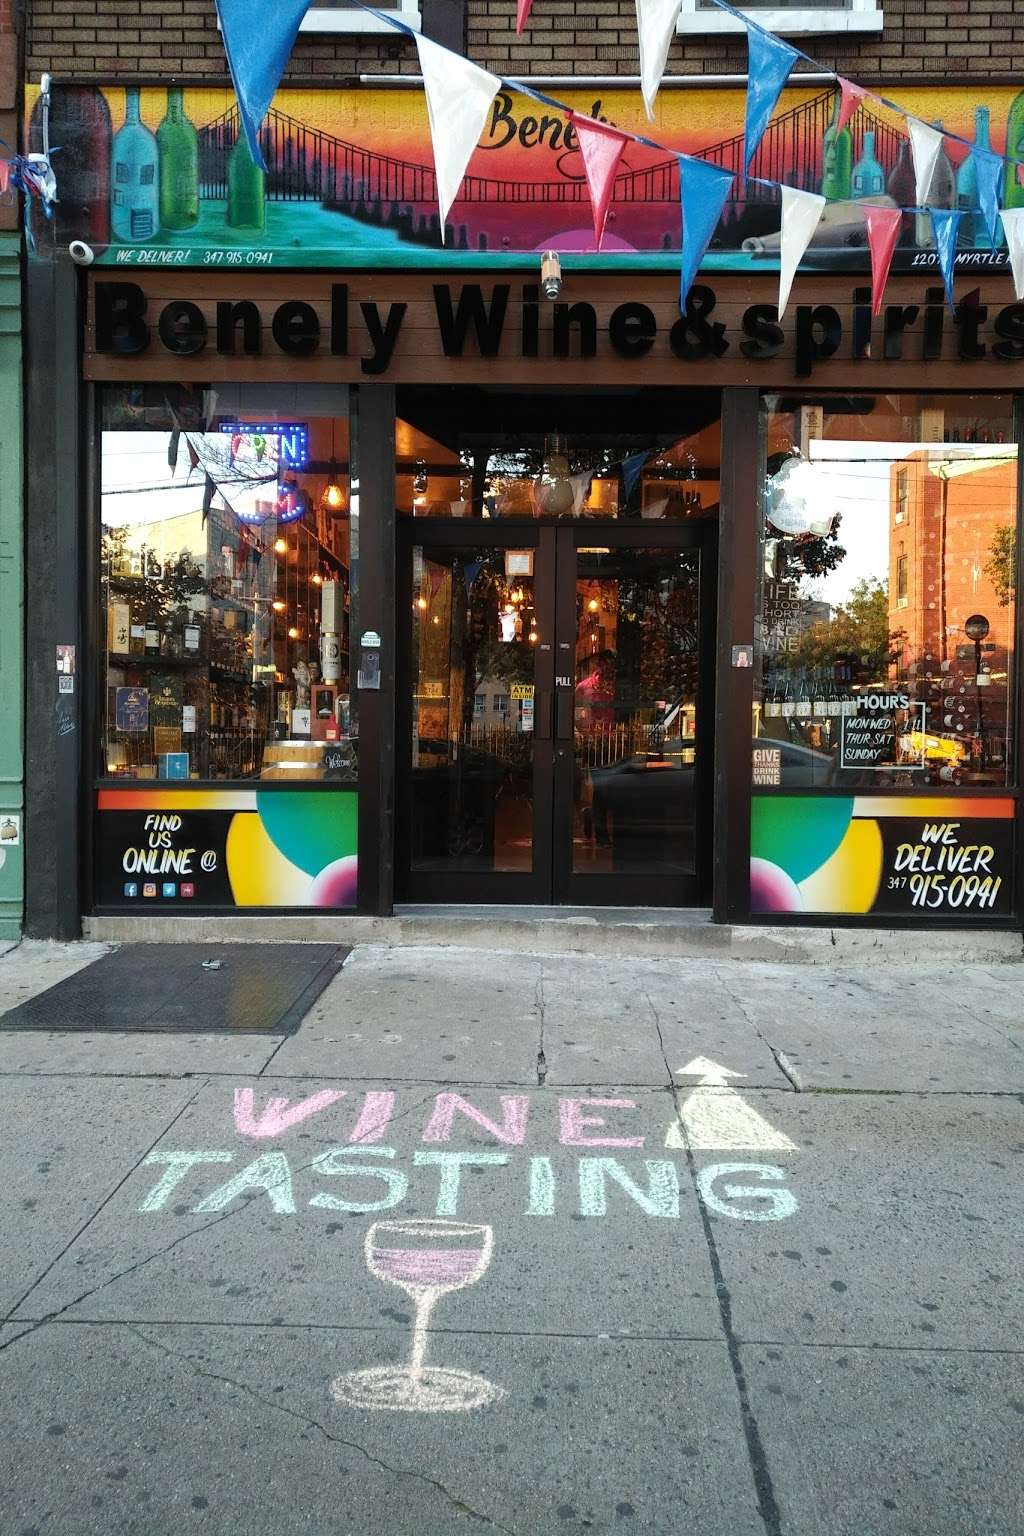 Benely Wine & Spirits - store  | Photo 4 of 10 | Address: 1207 Myrtle Ave, Brooklyn, NY 11221, USA | Phone: (347) 915-0941